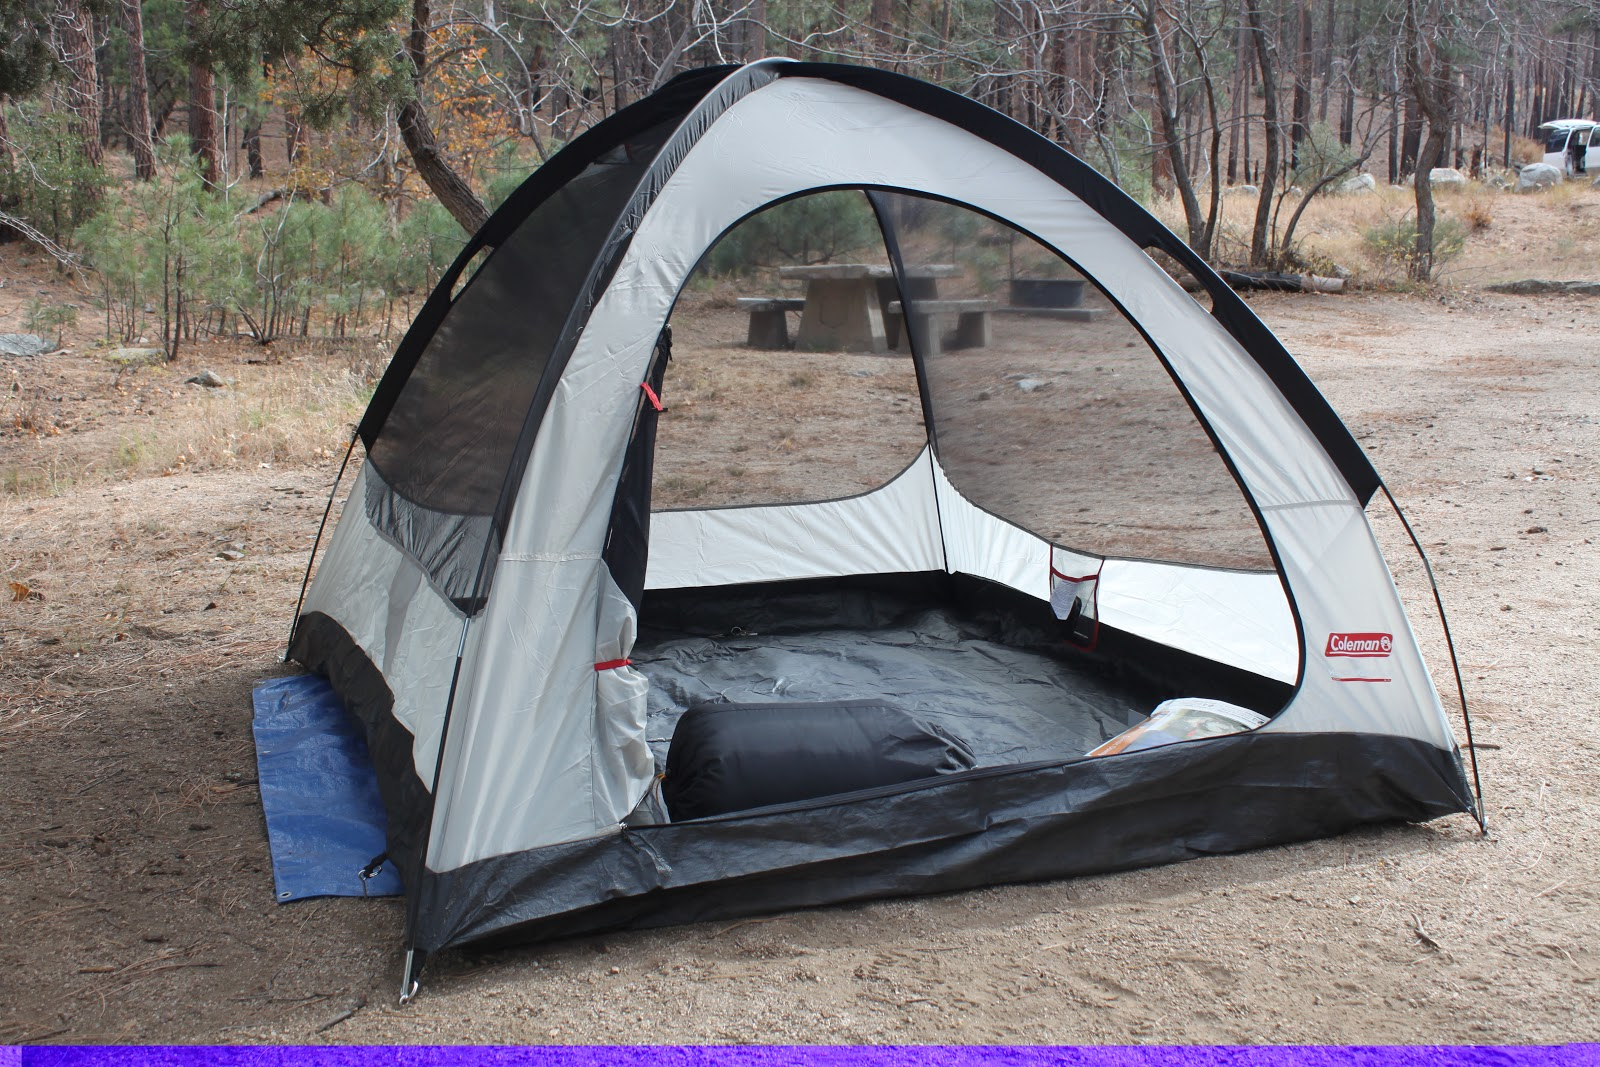 & Stereowise Plus: Coleman Hooligan 3 Tent Review